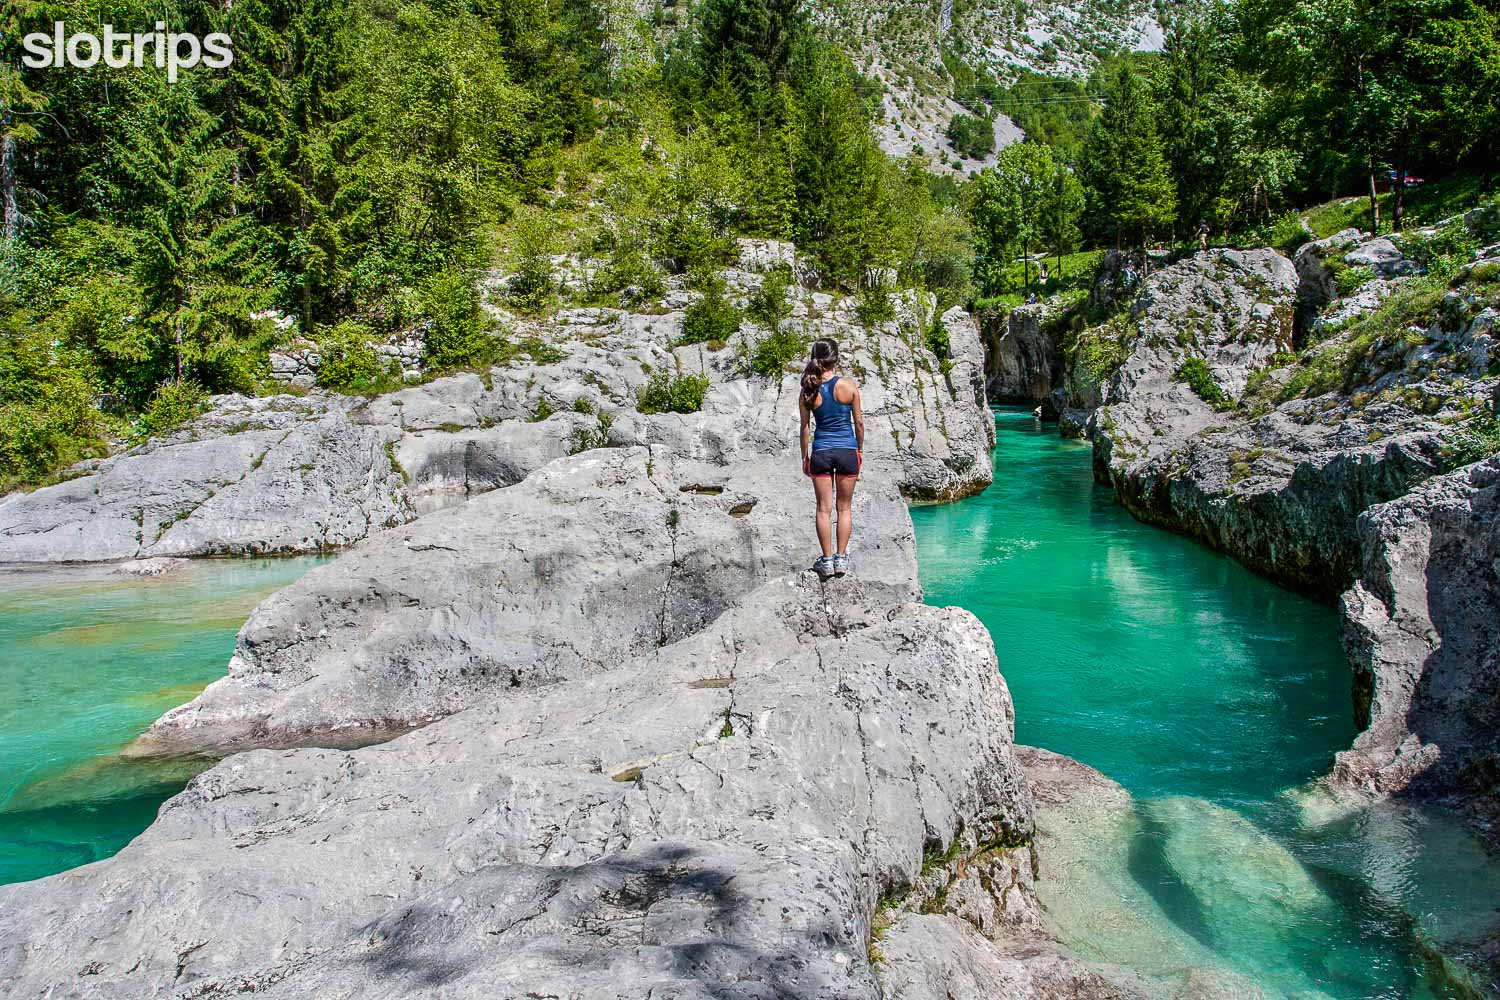 Walking by the Great Soca Gorge in Slovenia